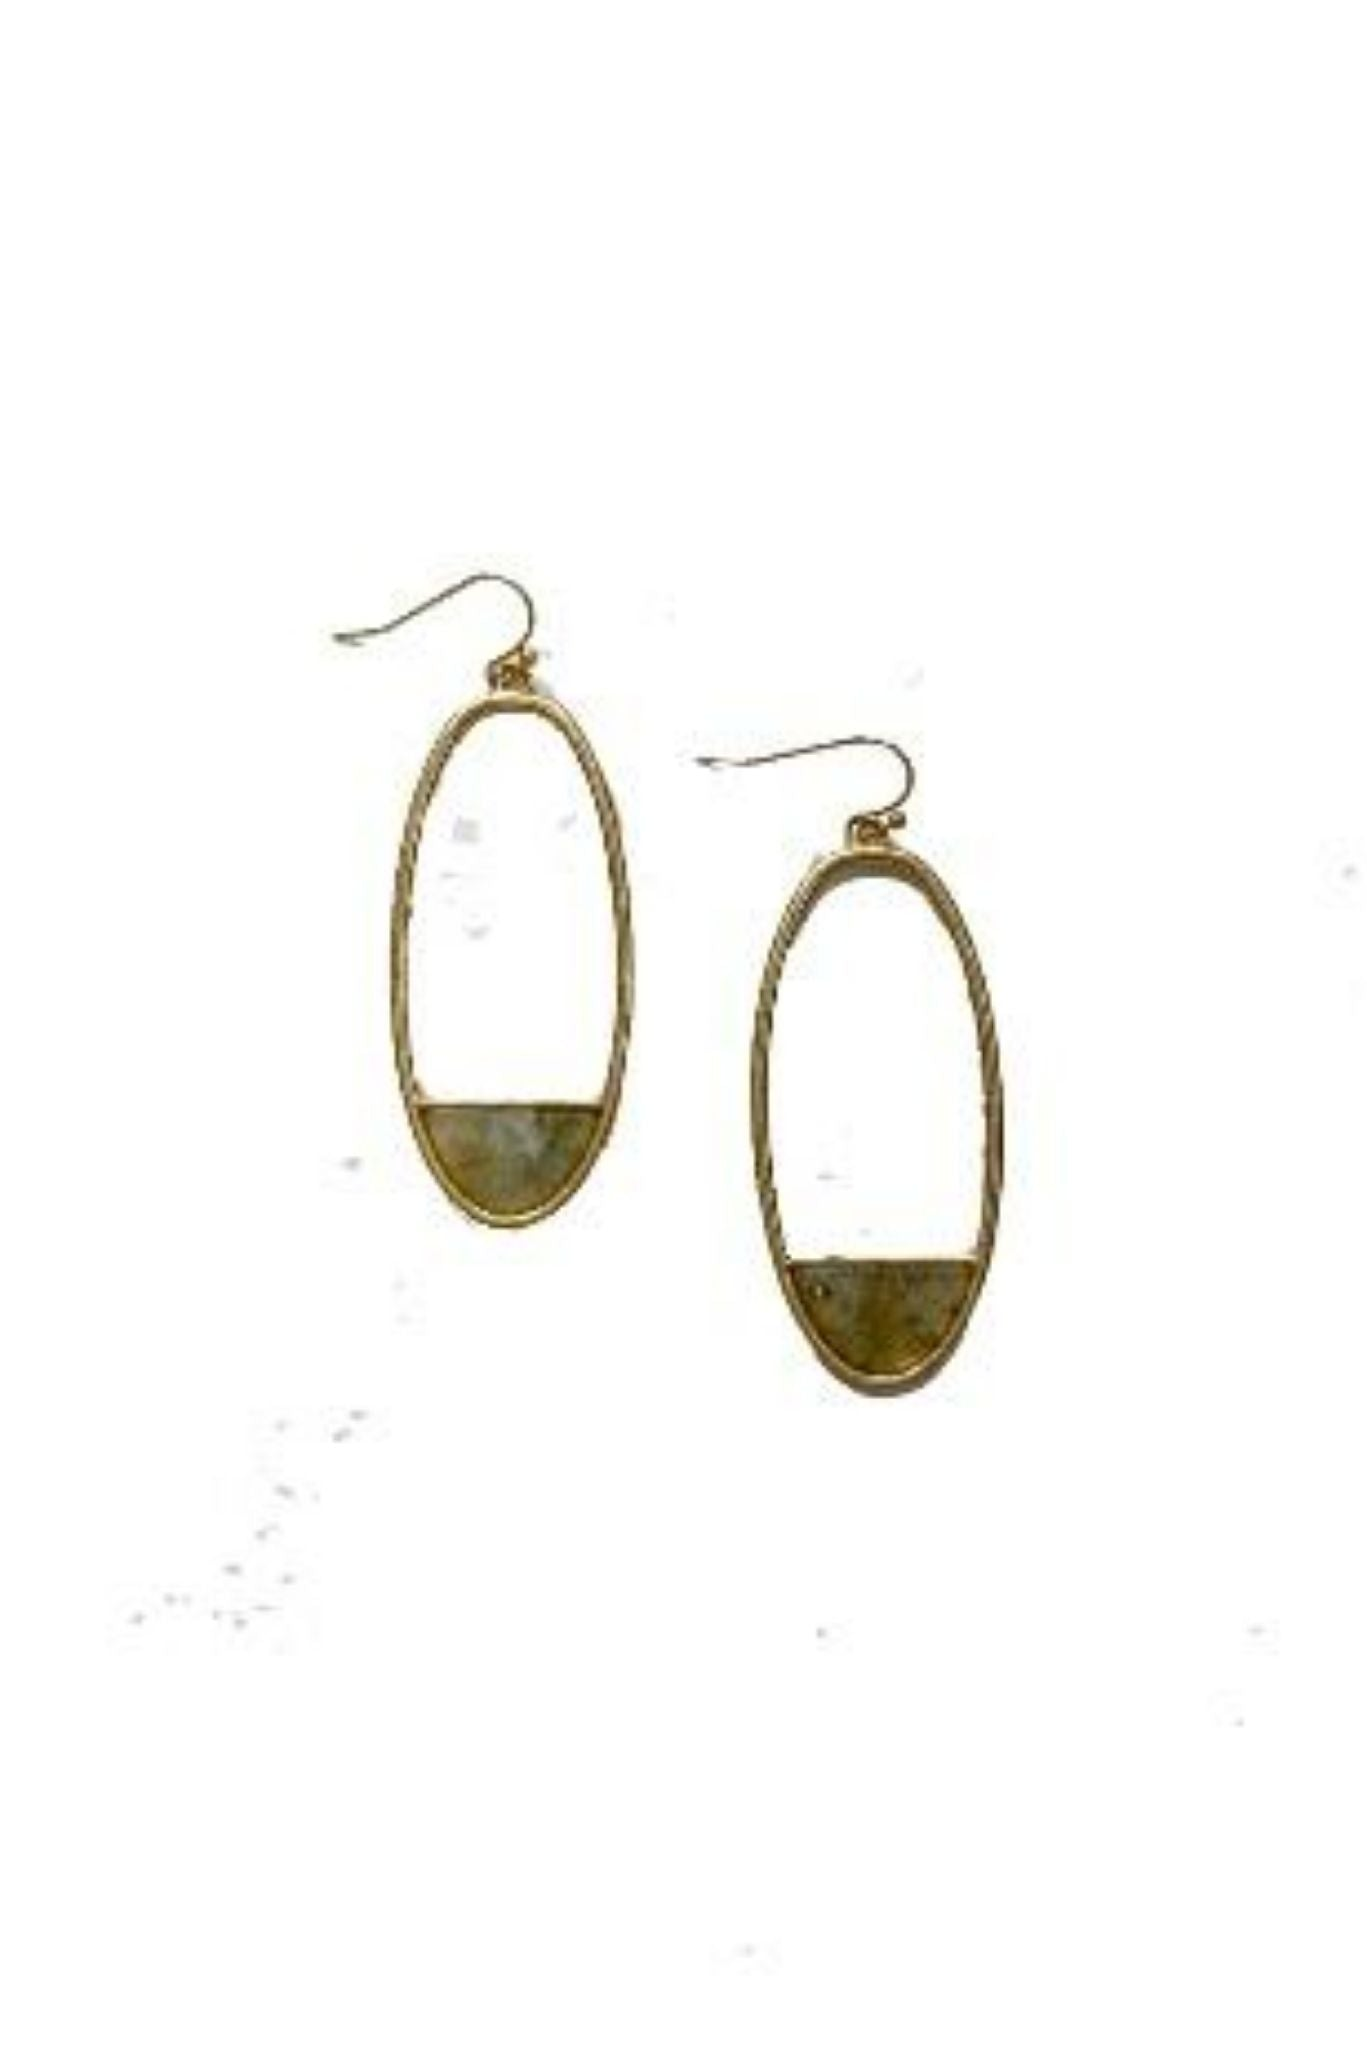 Gold Oval Earrings w/ Small Grey Stone